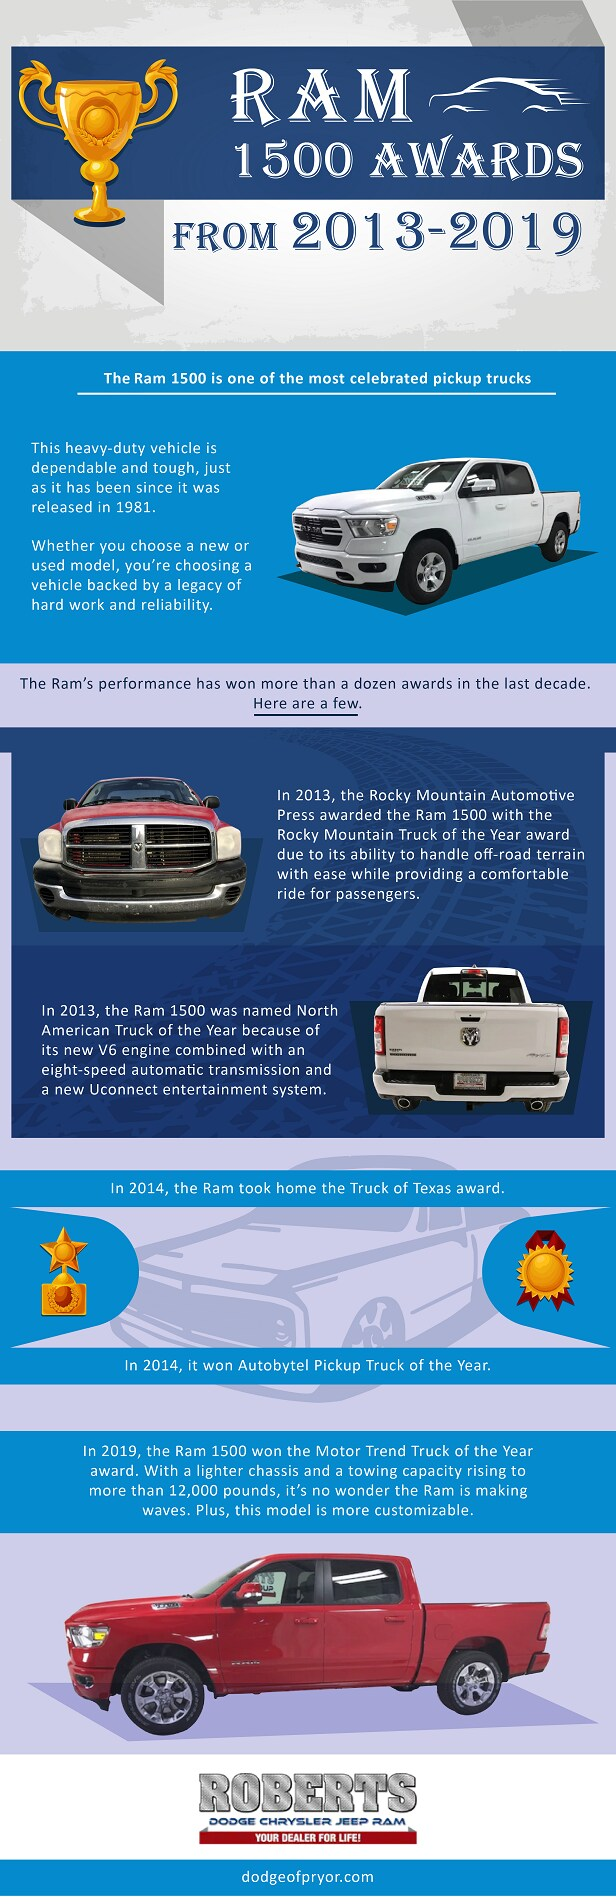 Ram 1500 Awards from 2013-2019